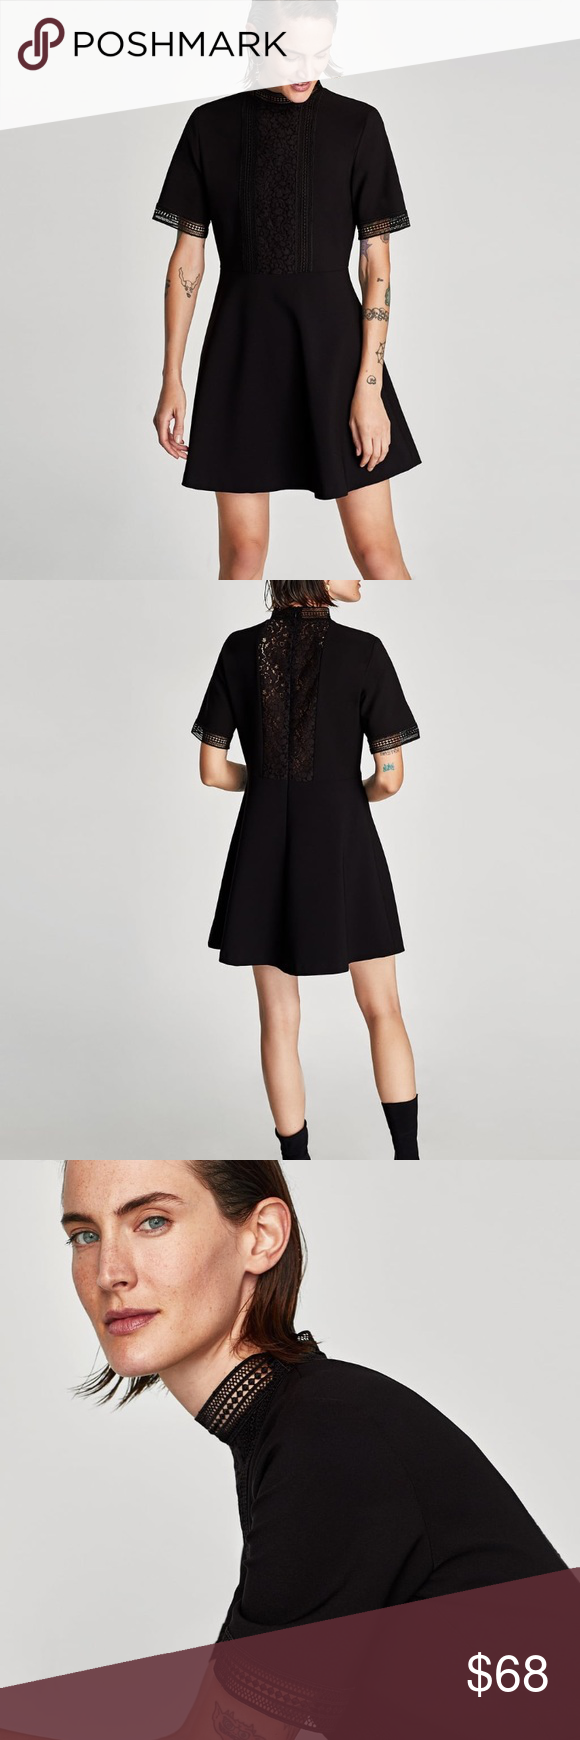 828568127d Zara mock neck lace back skater dress Size Small new with tags ...